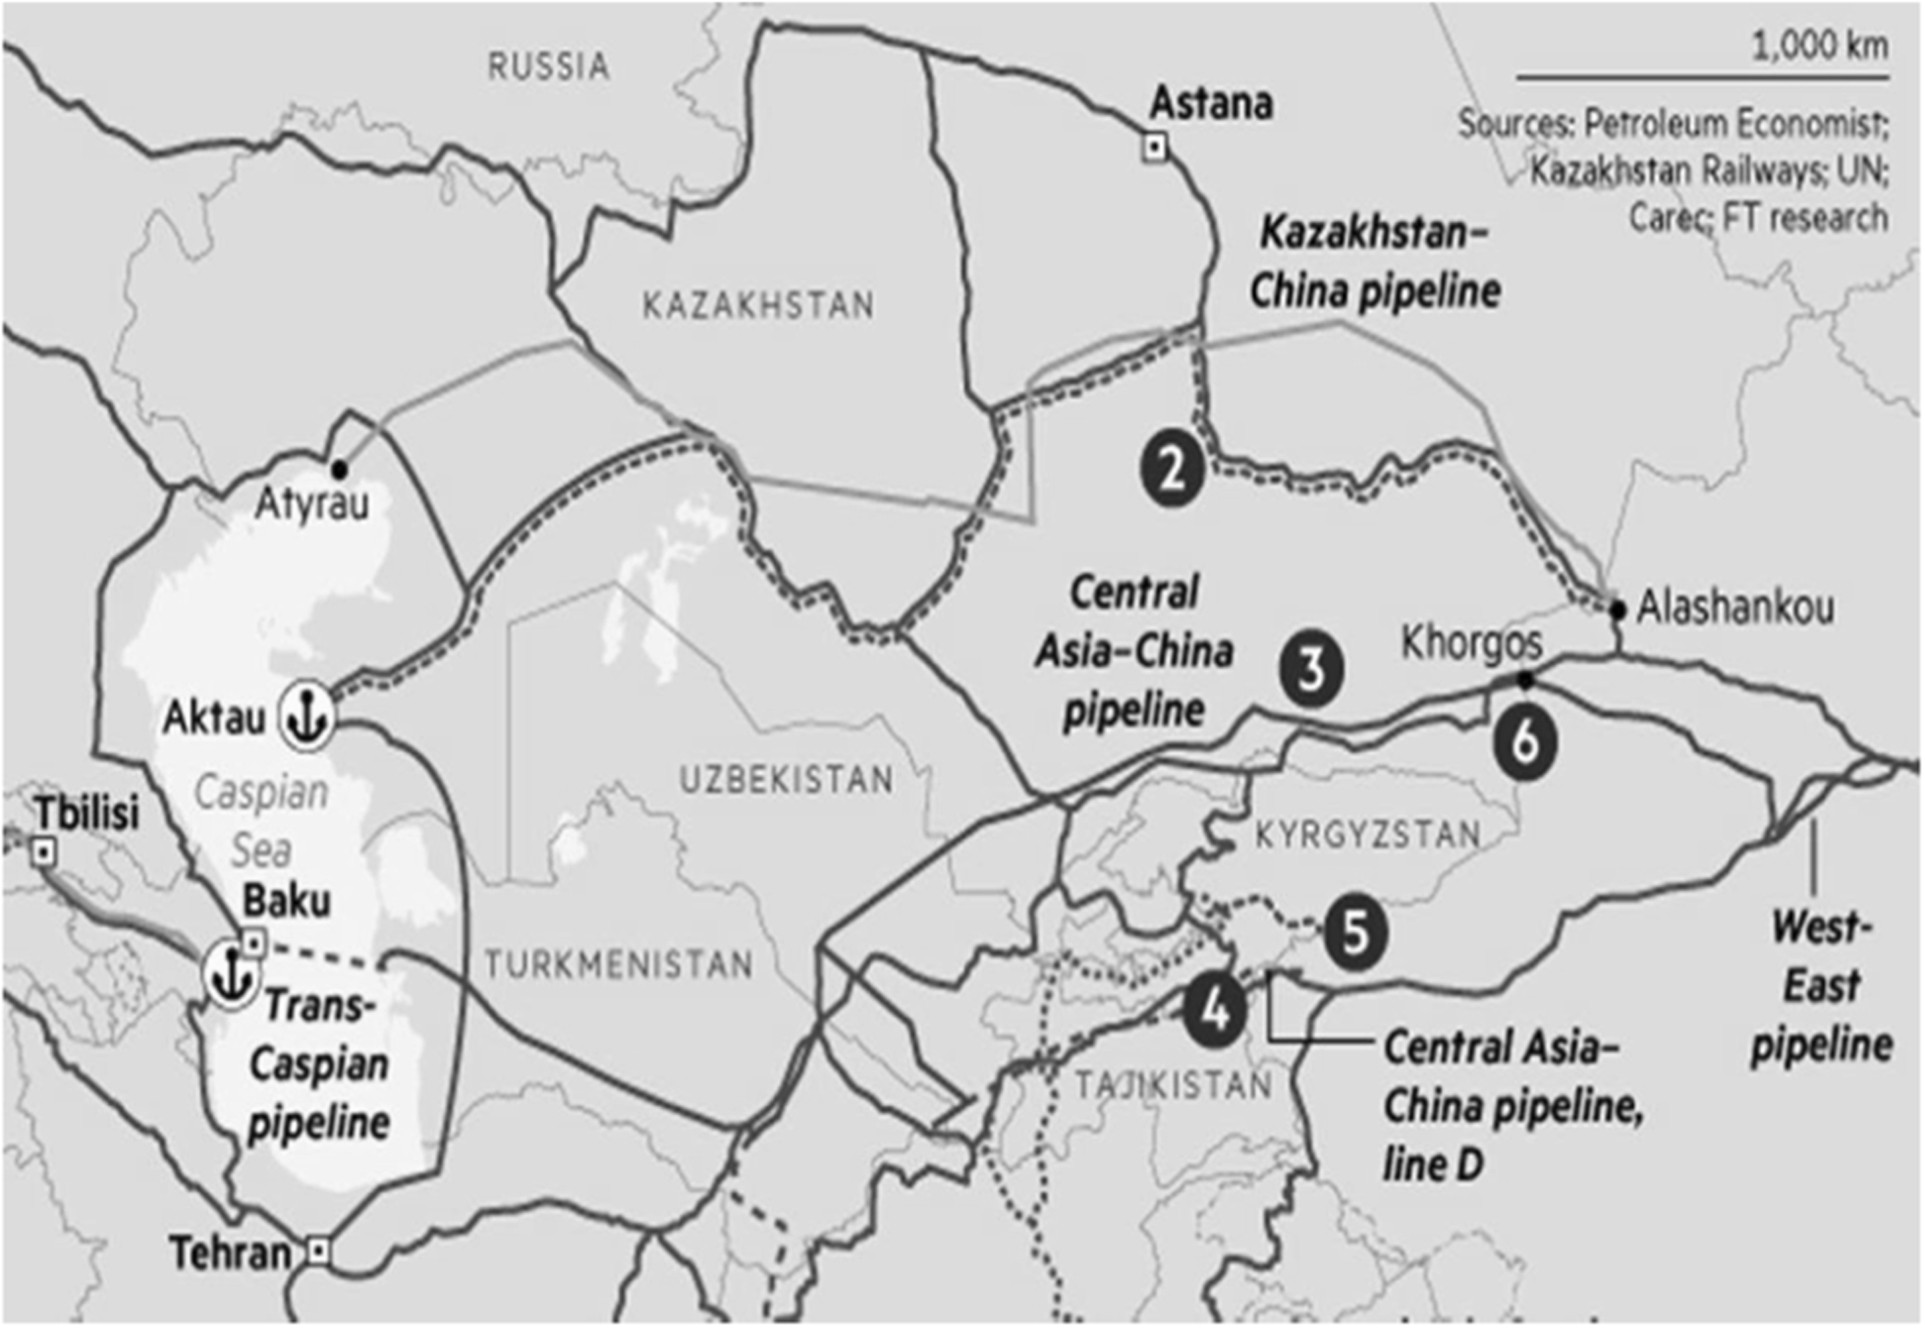 Re Centering Central Asia Chinas New Great Game In The Old Map Of 12 Regional Us Circuit Courts Appeals With Links To Eurasian Heartland Palgrave Communications